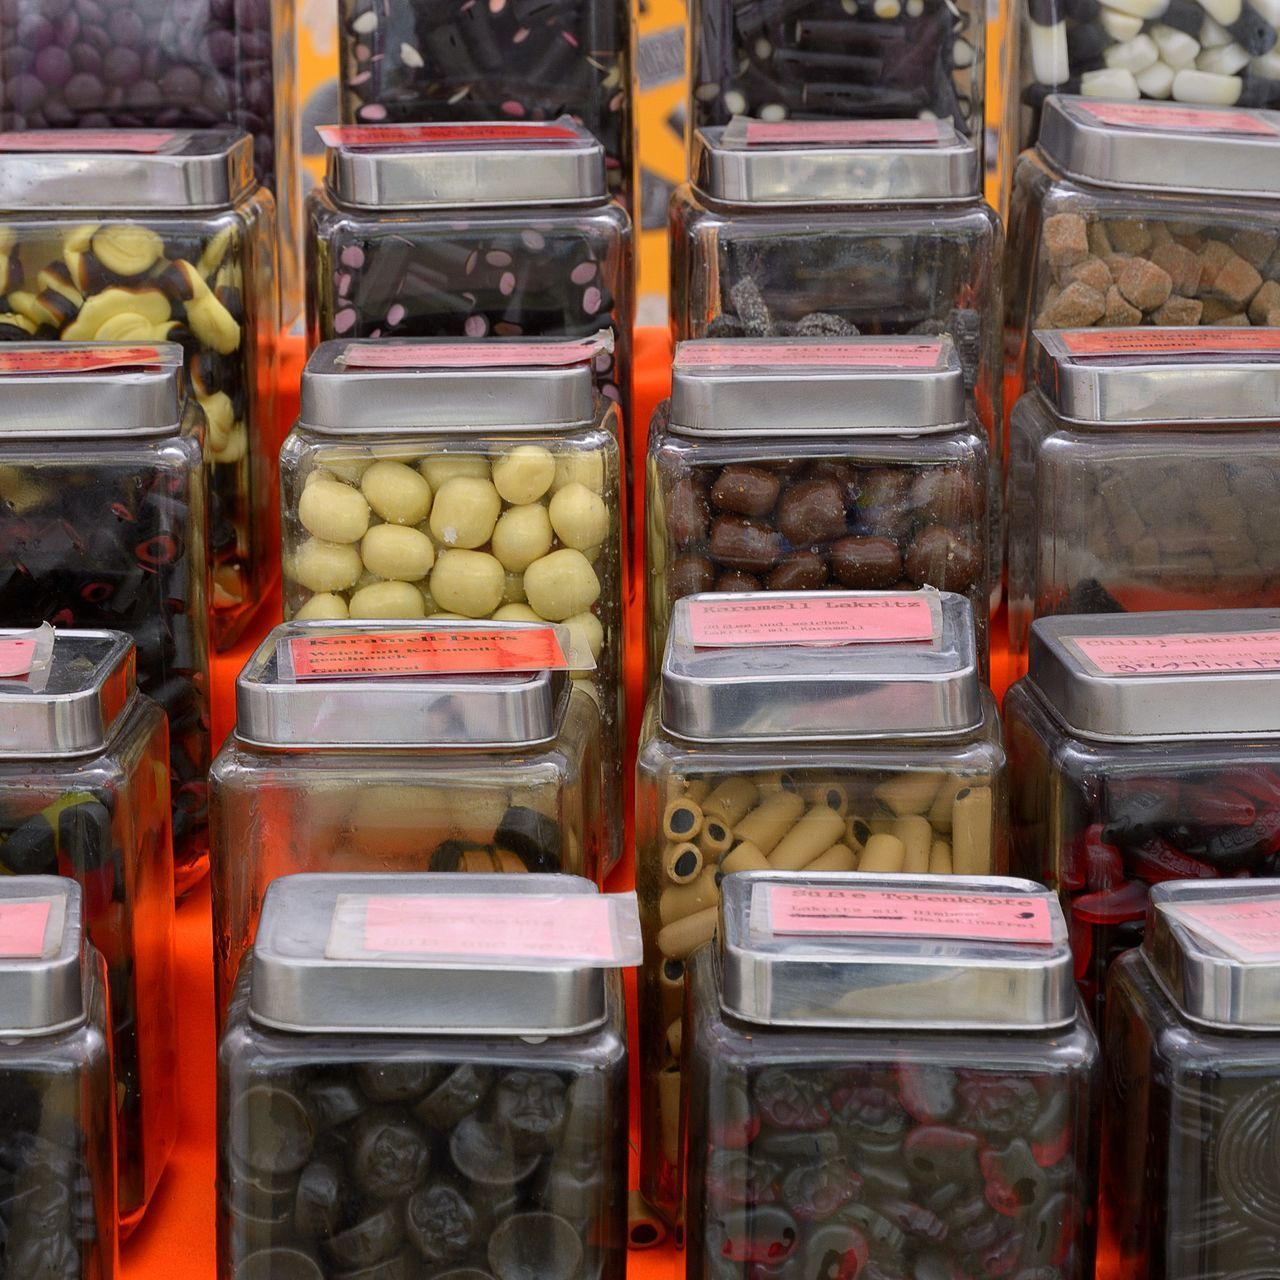 Dutch Licorice Food Food And Drink For Sale Licorice Market Market Stall No People Retail